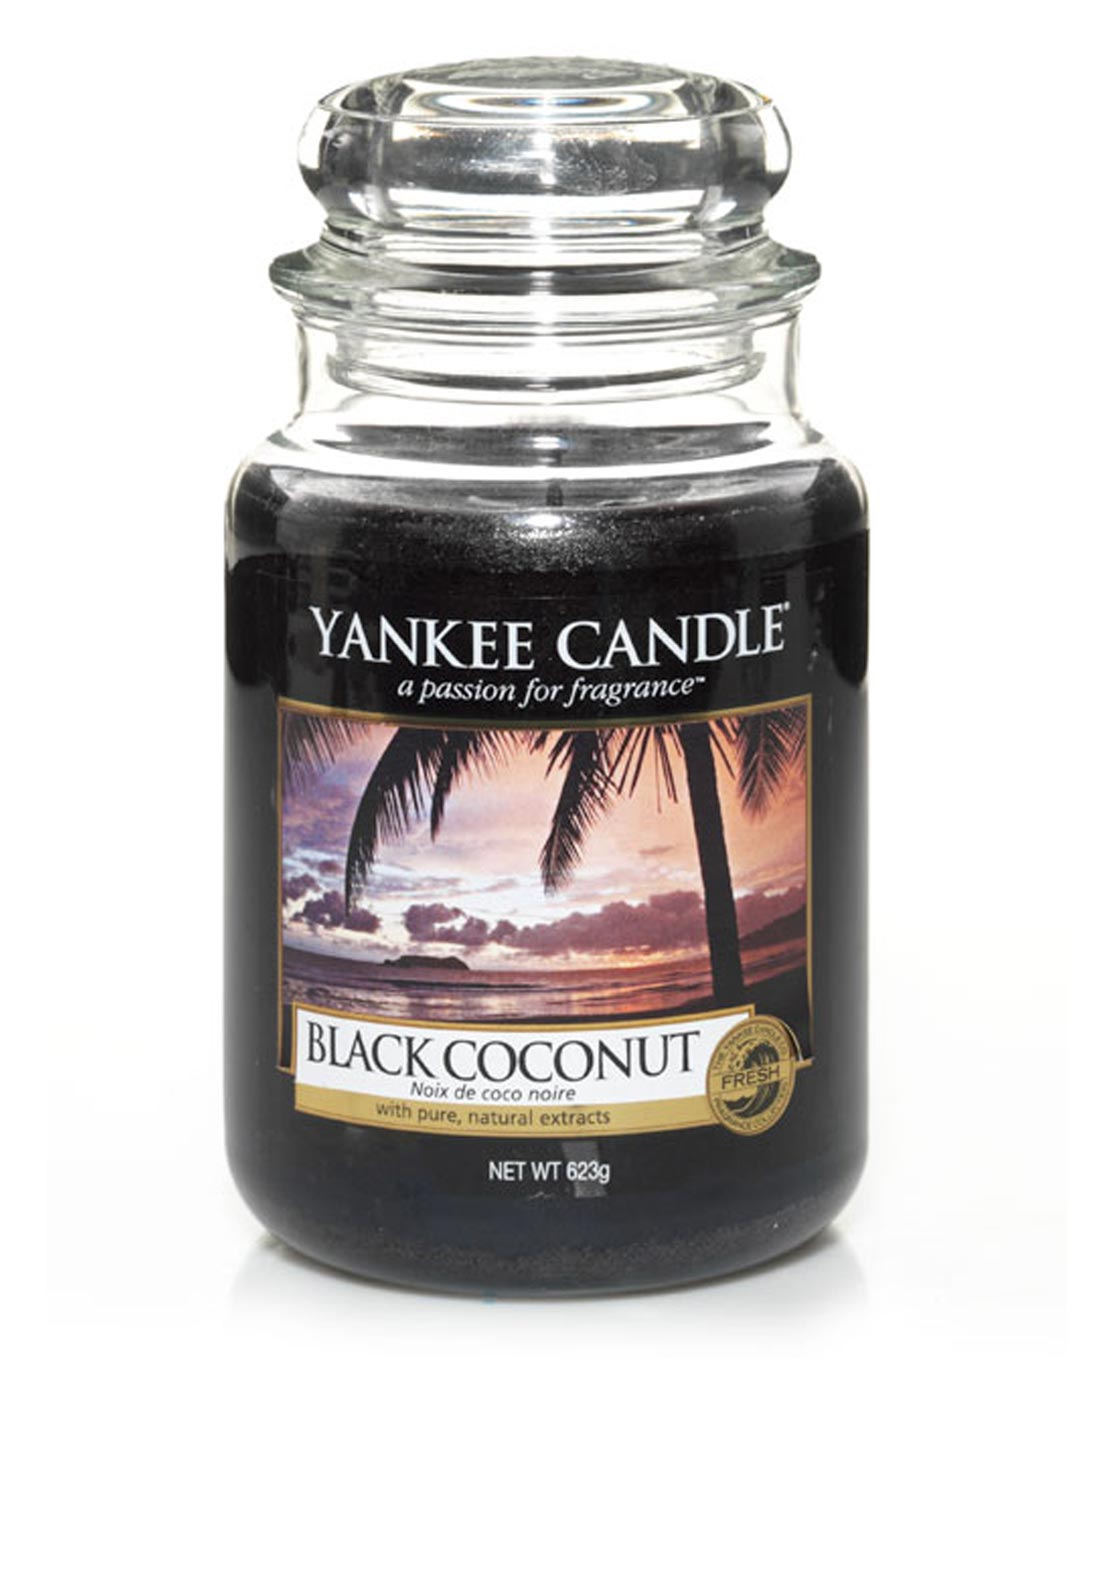 Yankee Candle Large Classic Jar, Black Coconut